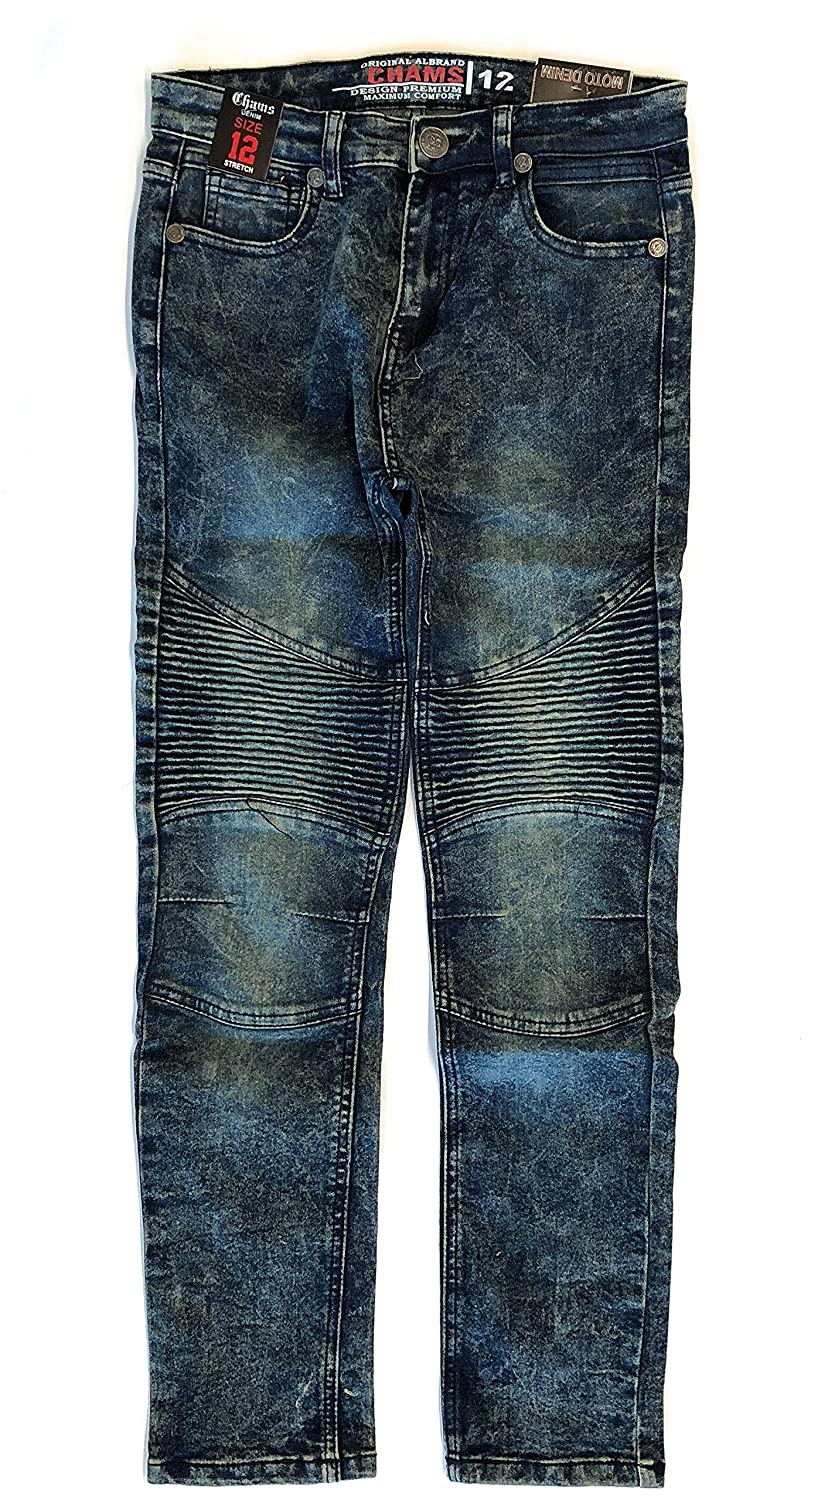 Chams Boy's Moto Washed Sand Blasted Denim Jeans